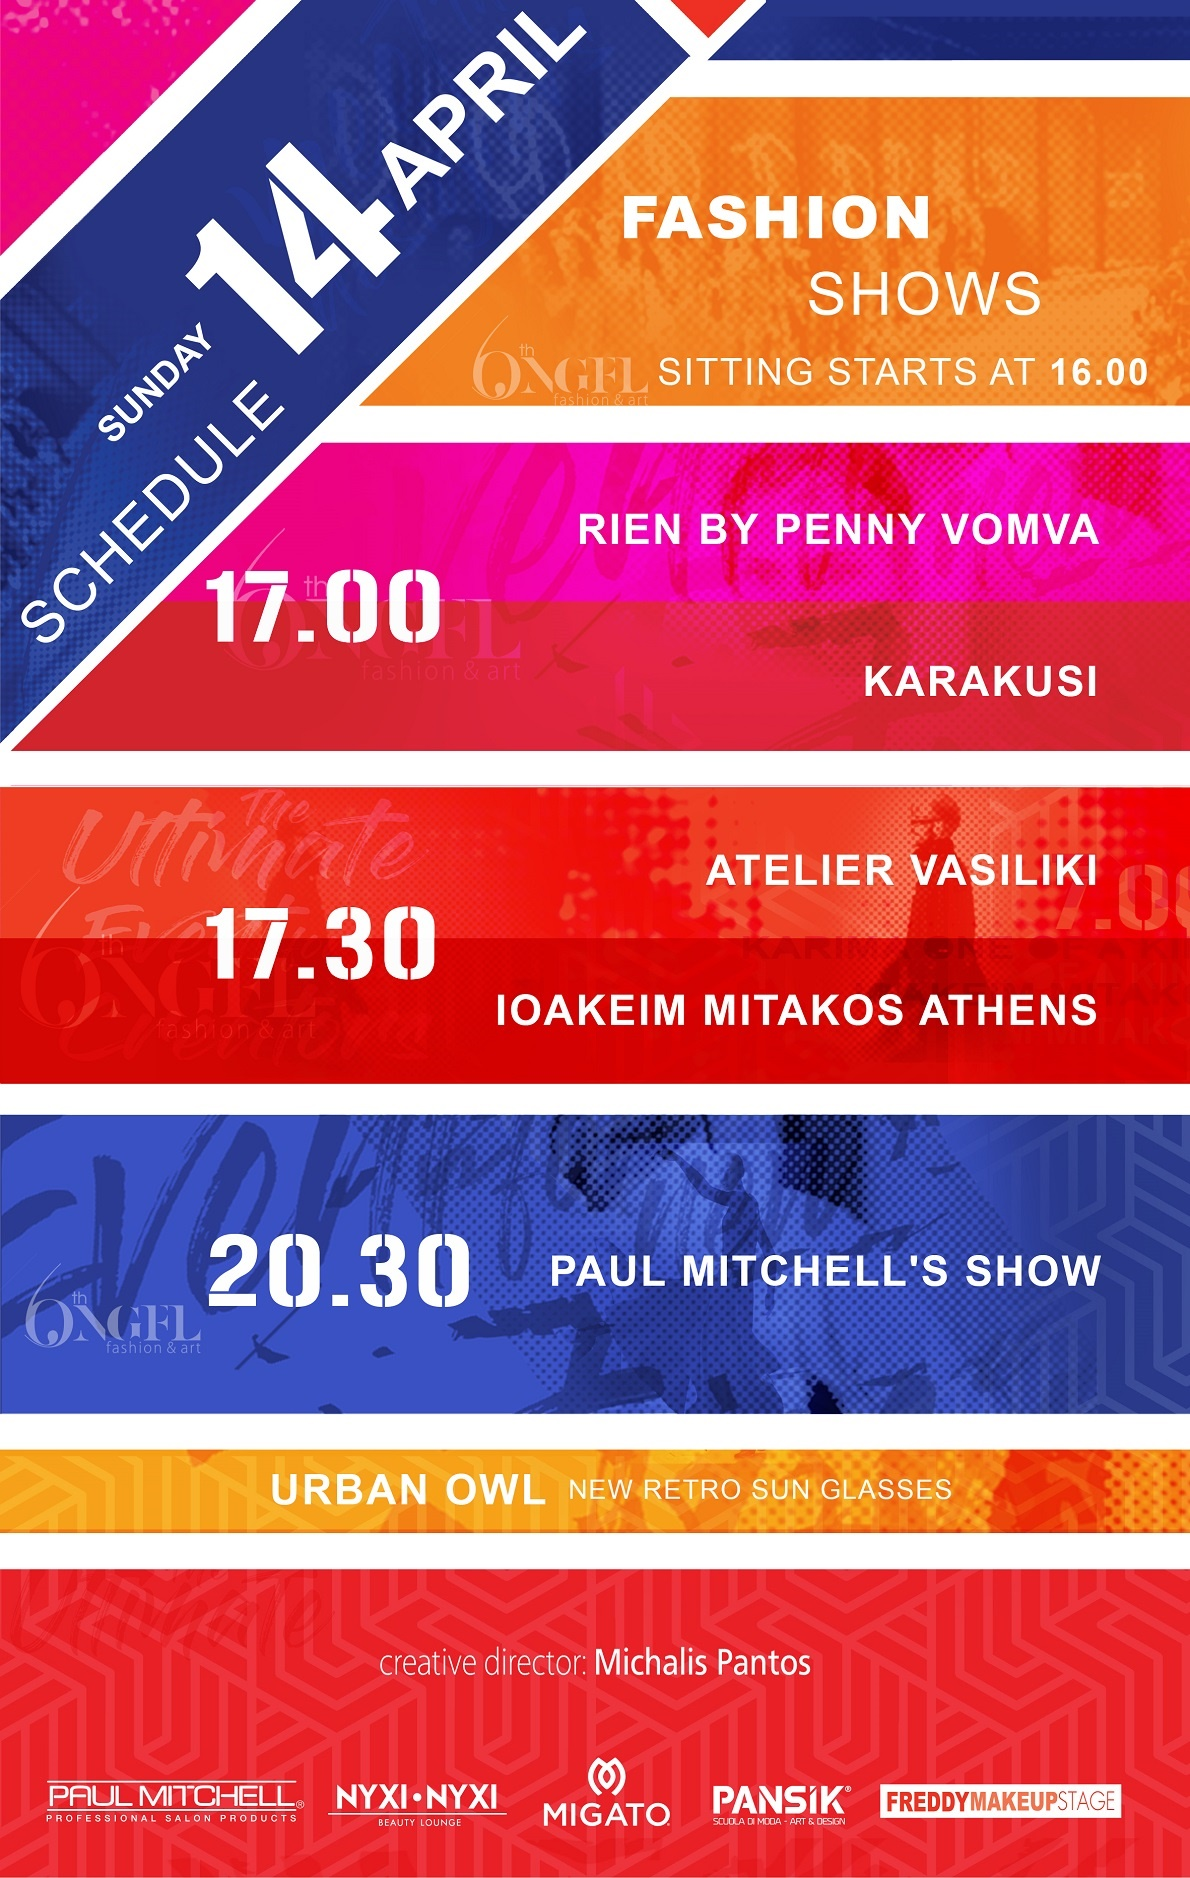 NGFL6 fashion show schedule at Athinais Venue Greece